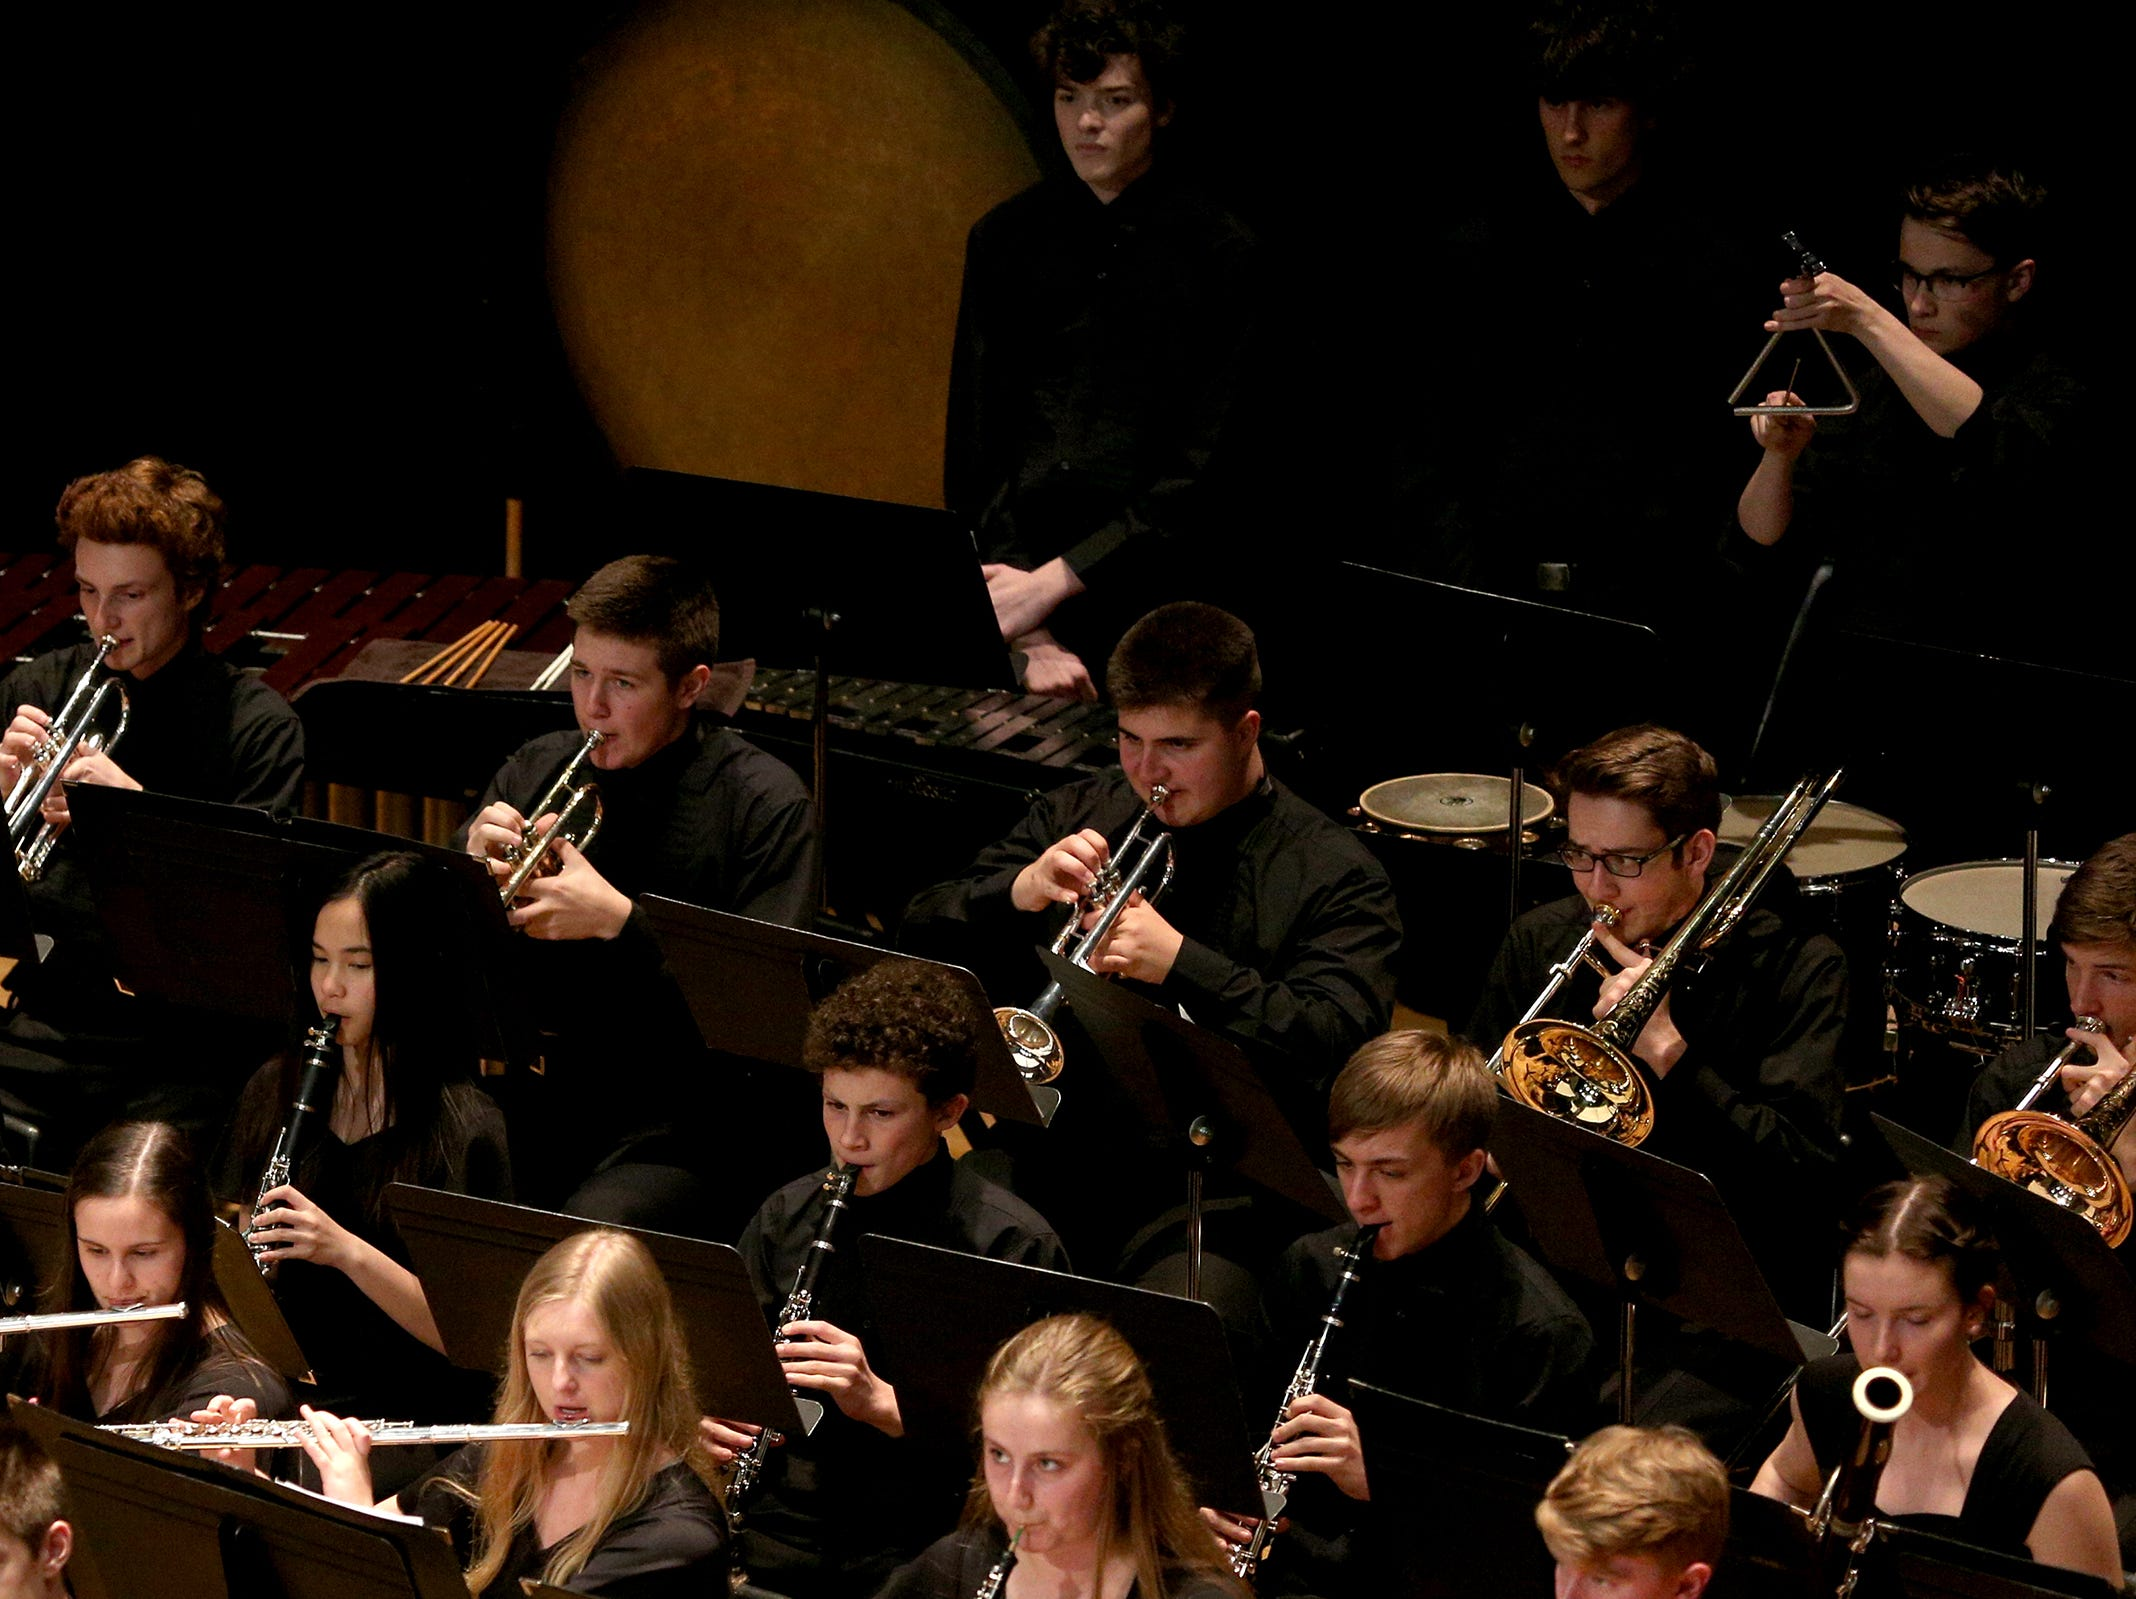 West Salem High School's Orchestra, under the direction of Todd Zimbelman and George Thomson, performs at the OSAA 6A Orchestra State Championships at Oregon State University in Corvallis on May 9, 2019.